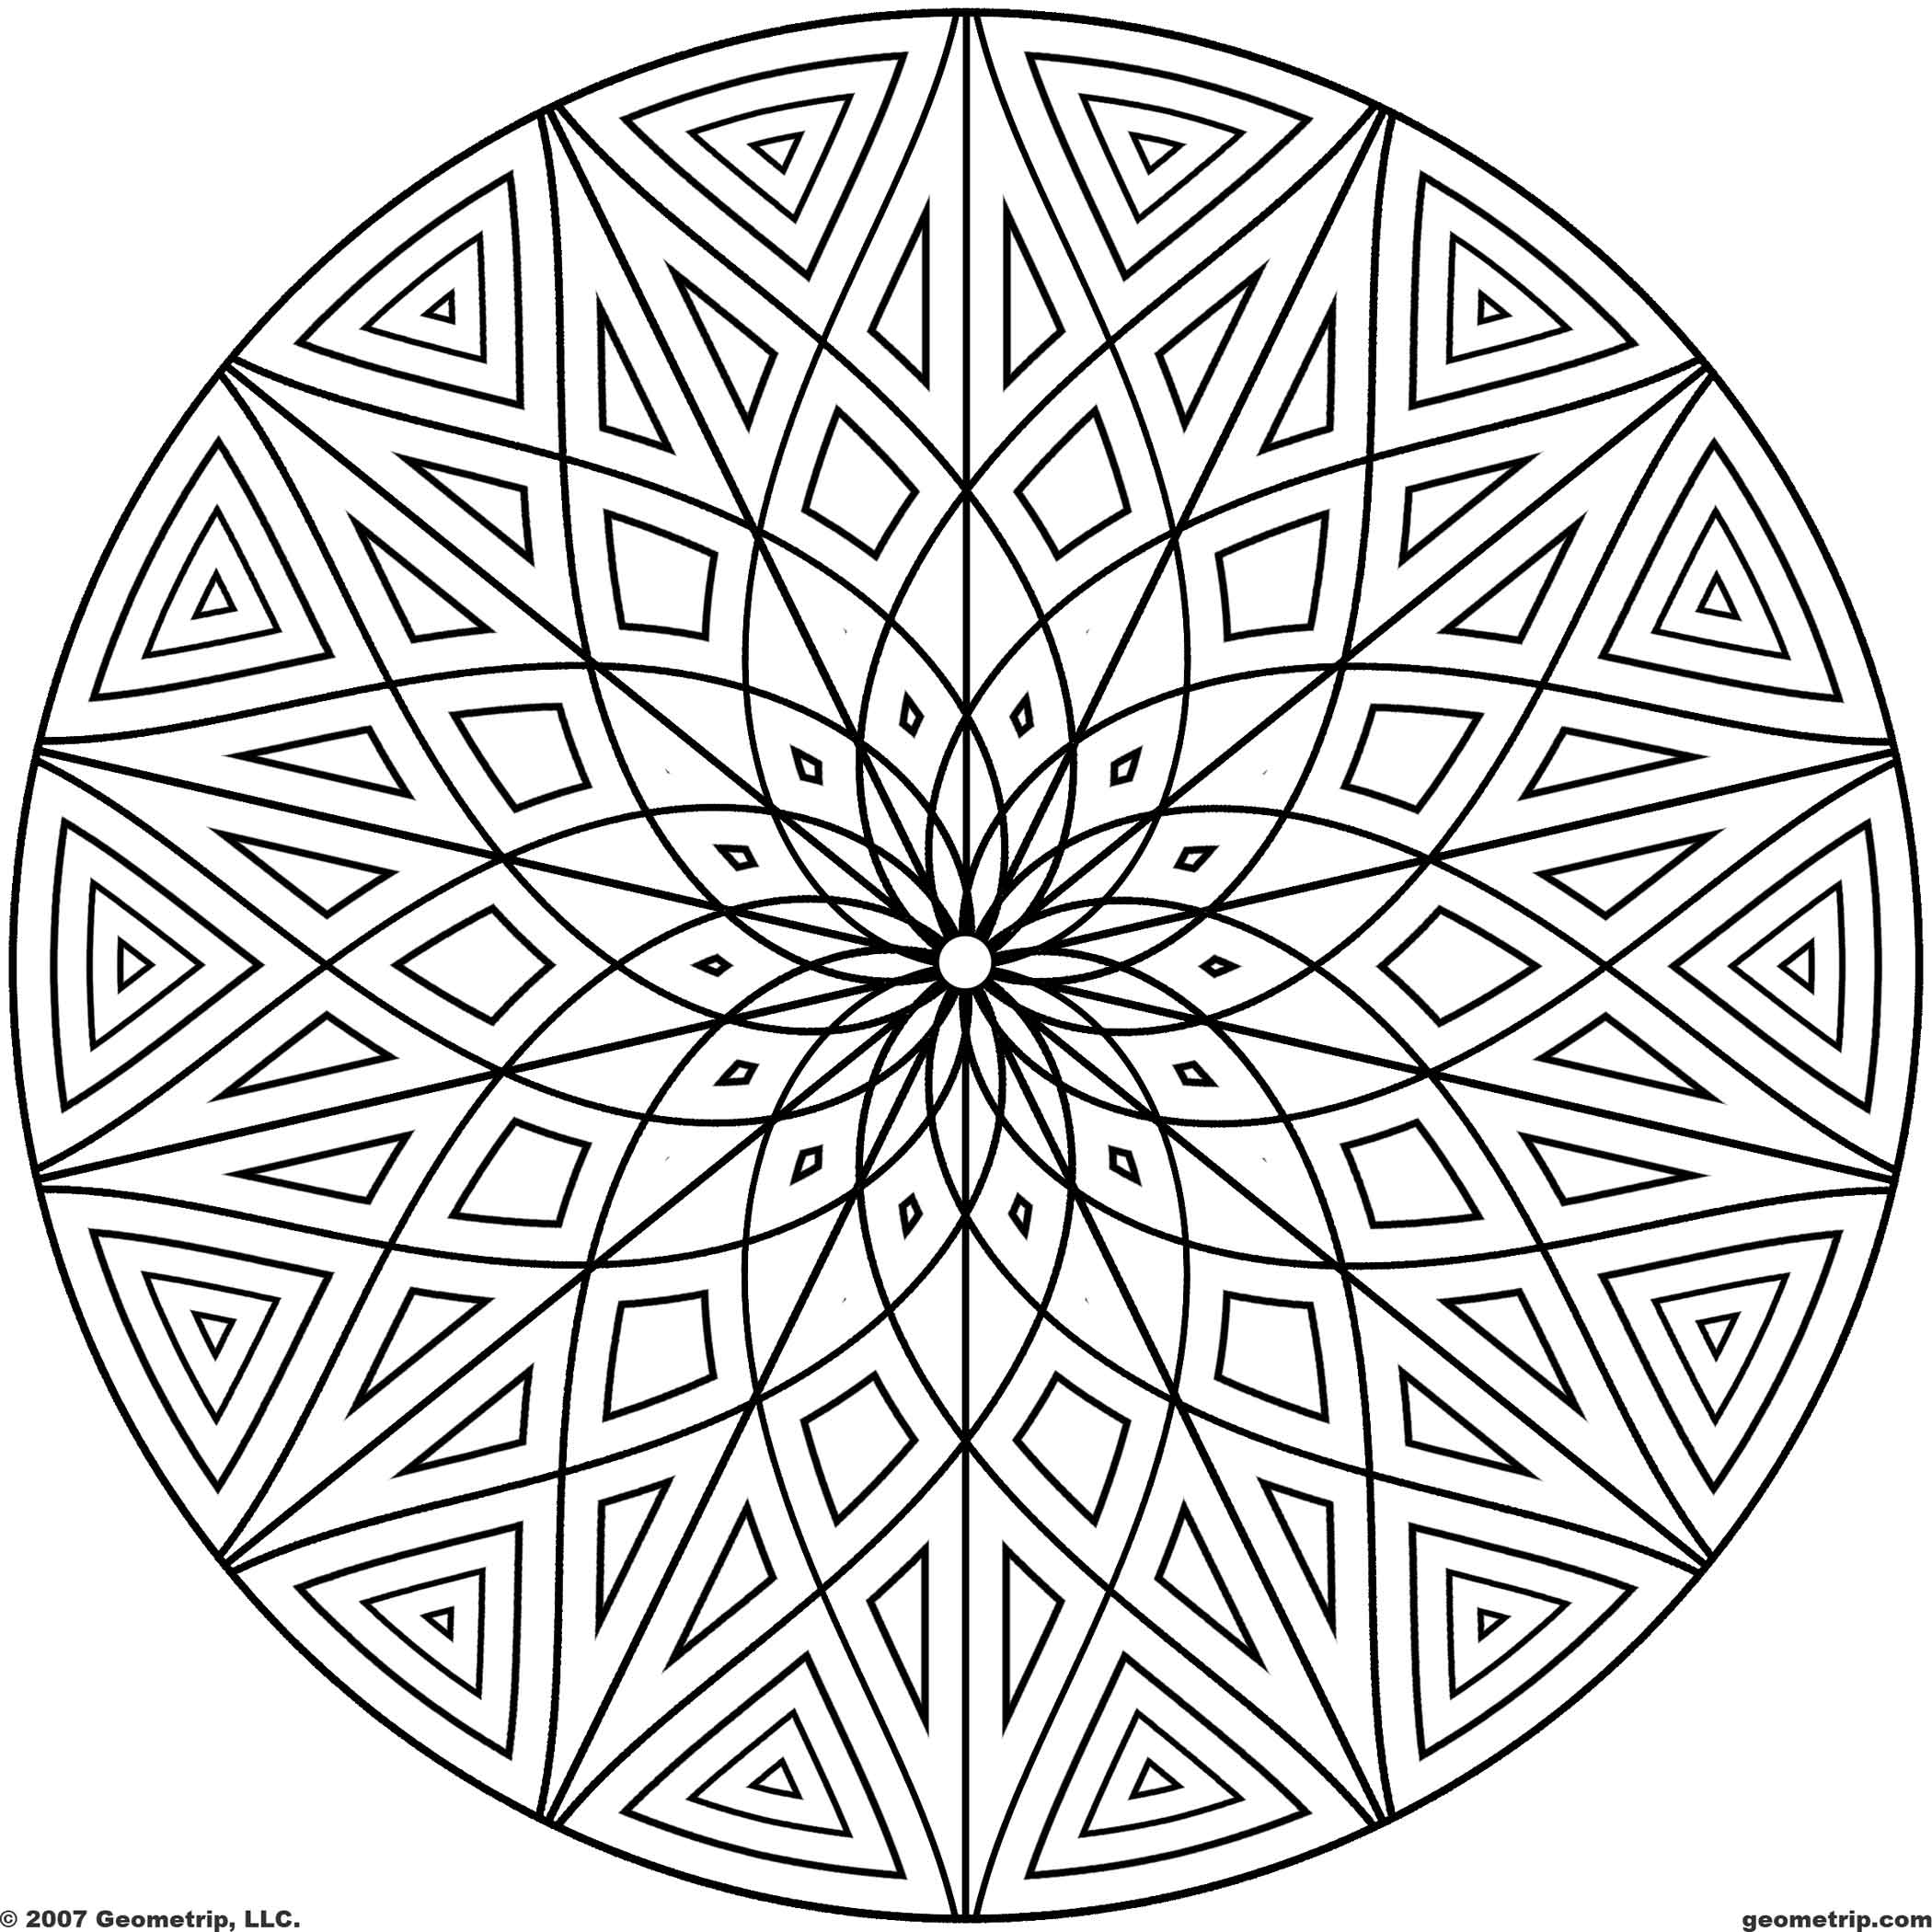 Geometric design coloring page coloring home for Geometric coloring pages to print